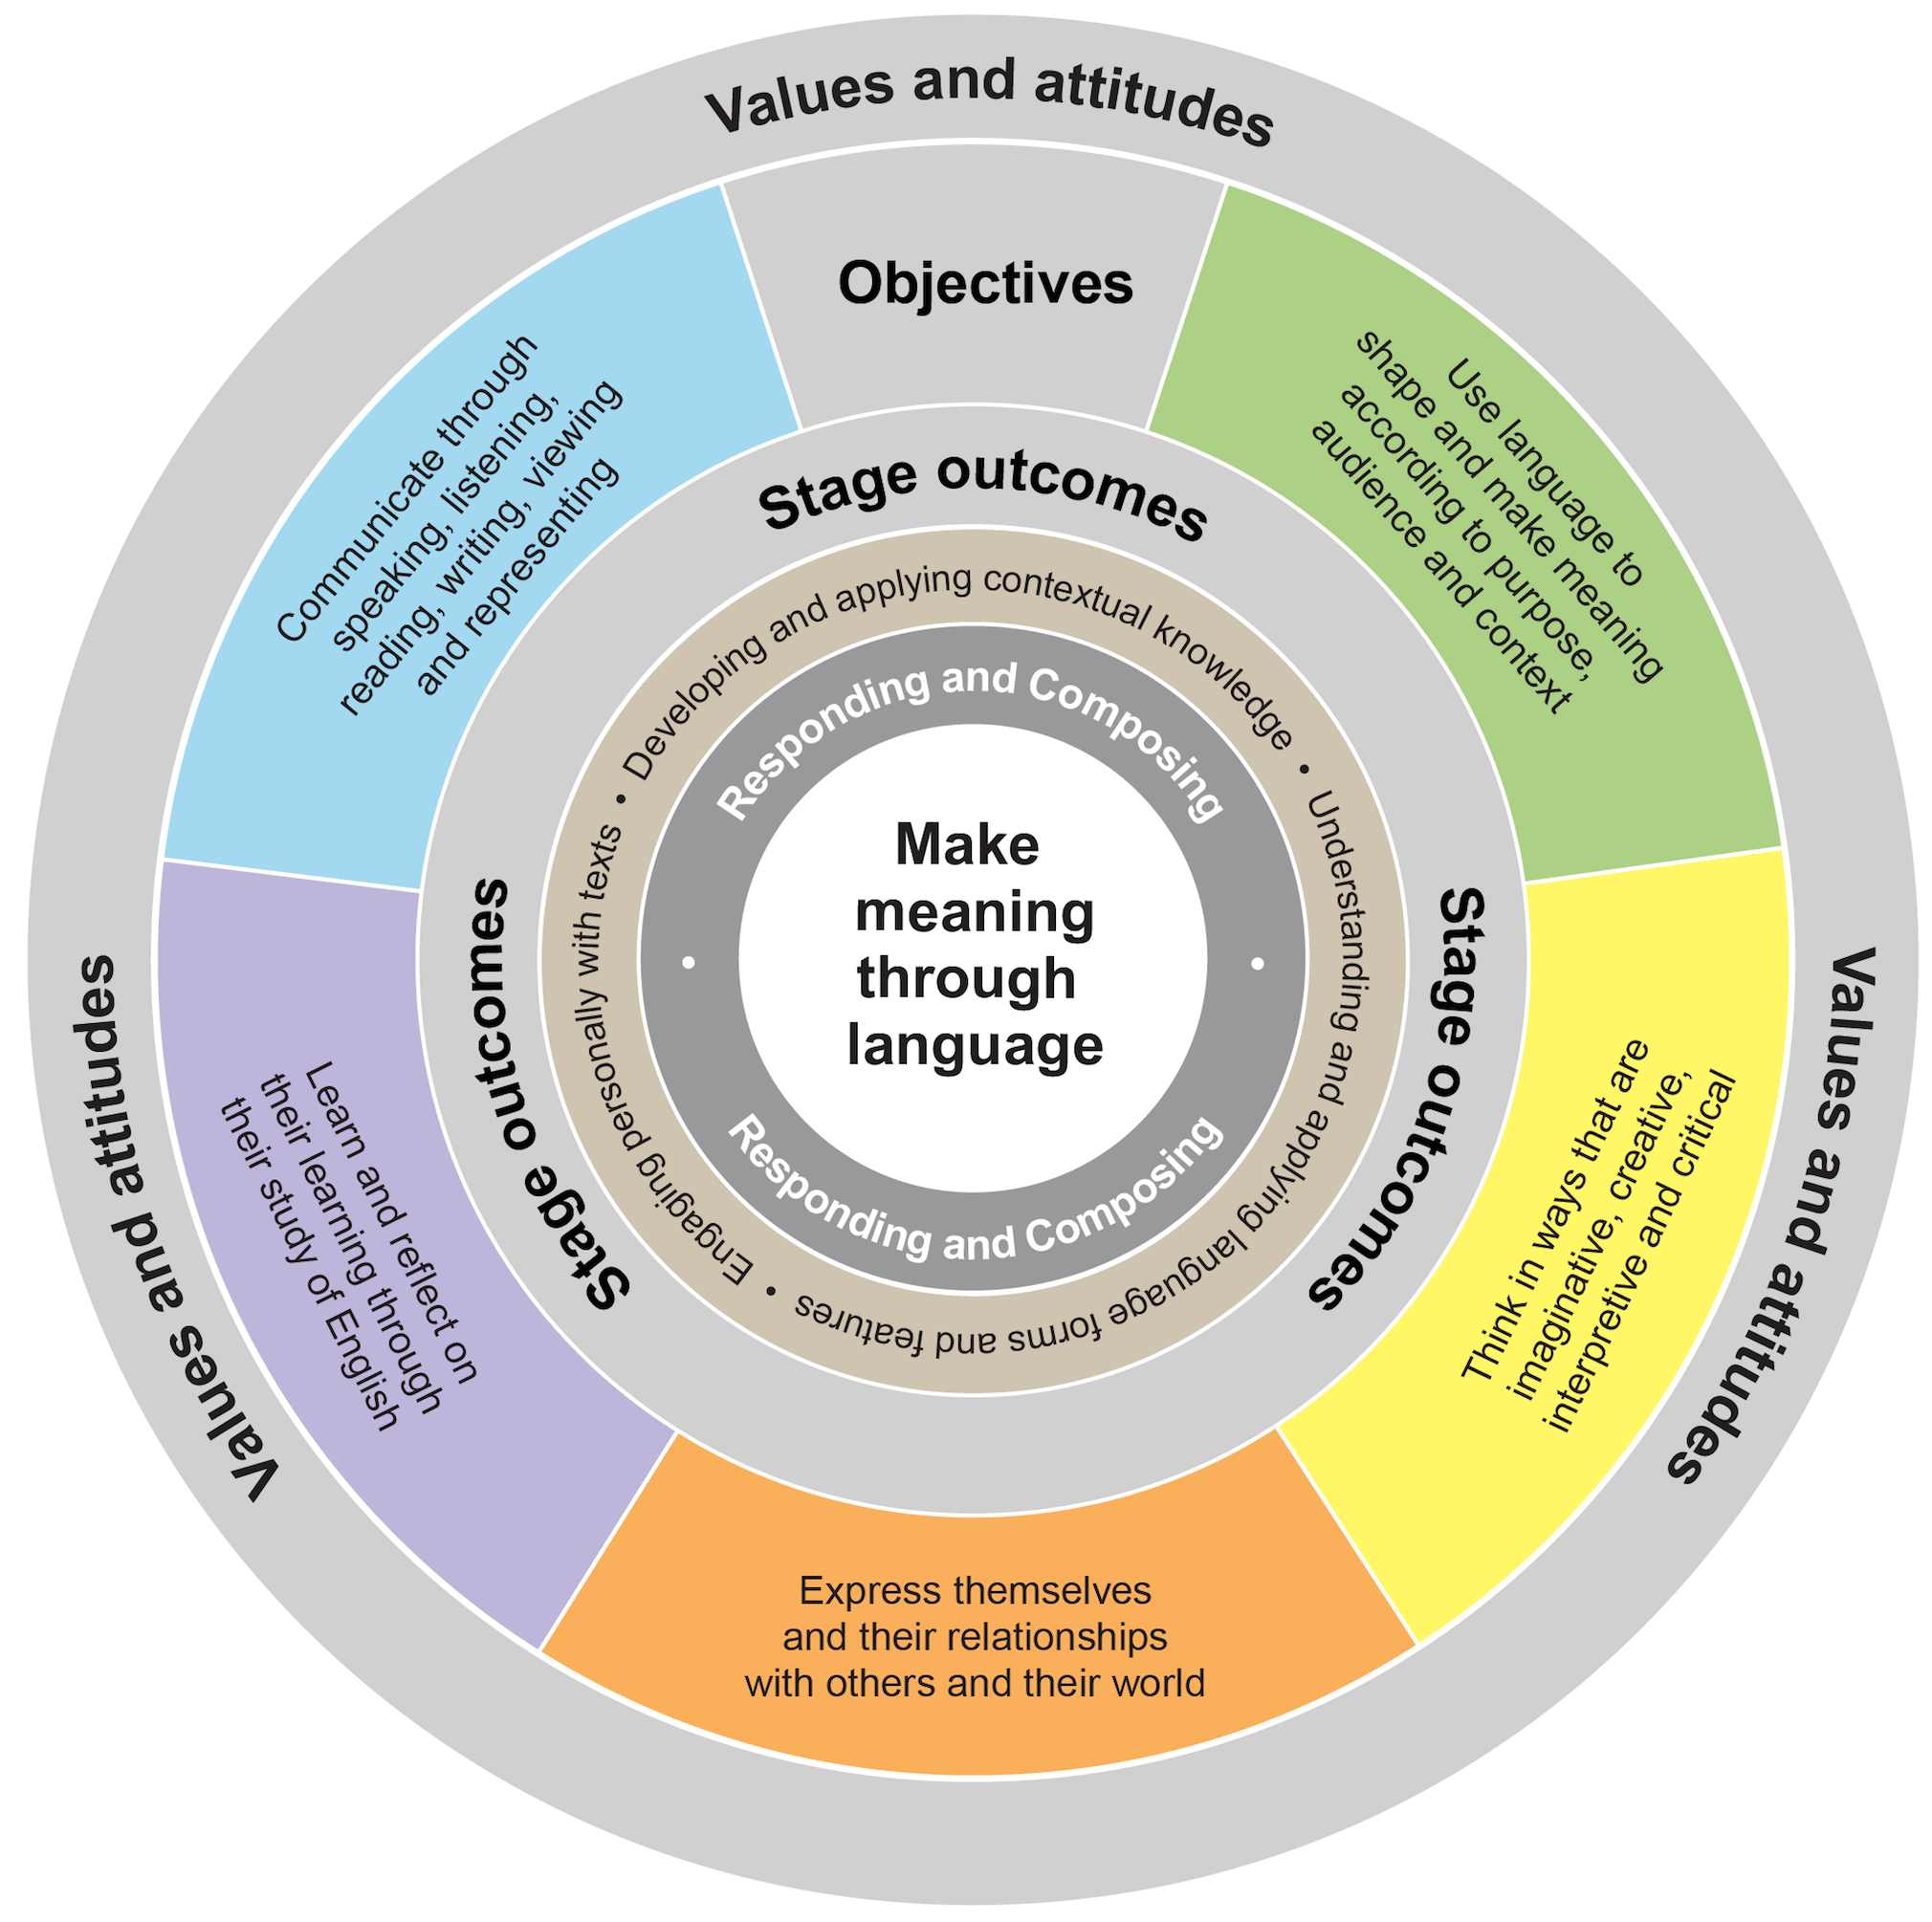 The organisation of content diagram consists of a central circle surrounded by five rings. The central circle is labelled Make meaning through language. The surrounding three rings are labelled Responding and Composing; Developing and applying contextual knowledge, Understanding and applying language forms and features and Engaging personally with texts; and Stage outcomes. The fourth ring shows the five course objectives: Use language to shape and make meaning according to purpose, audience and context; Think in ways that are imaginative, creative, interpretive and critical; Express themselves and their relationships with others and their world; Learn and reflect on their learning through their study of English; and Communicate through speaking, listening, reading, writing, viewing and representing. The outer ring is labelled Values and attitudes.